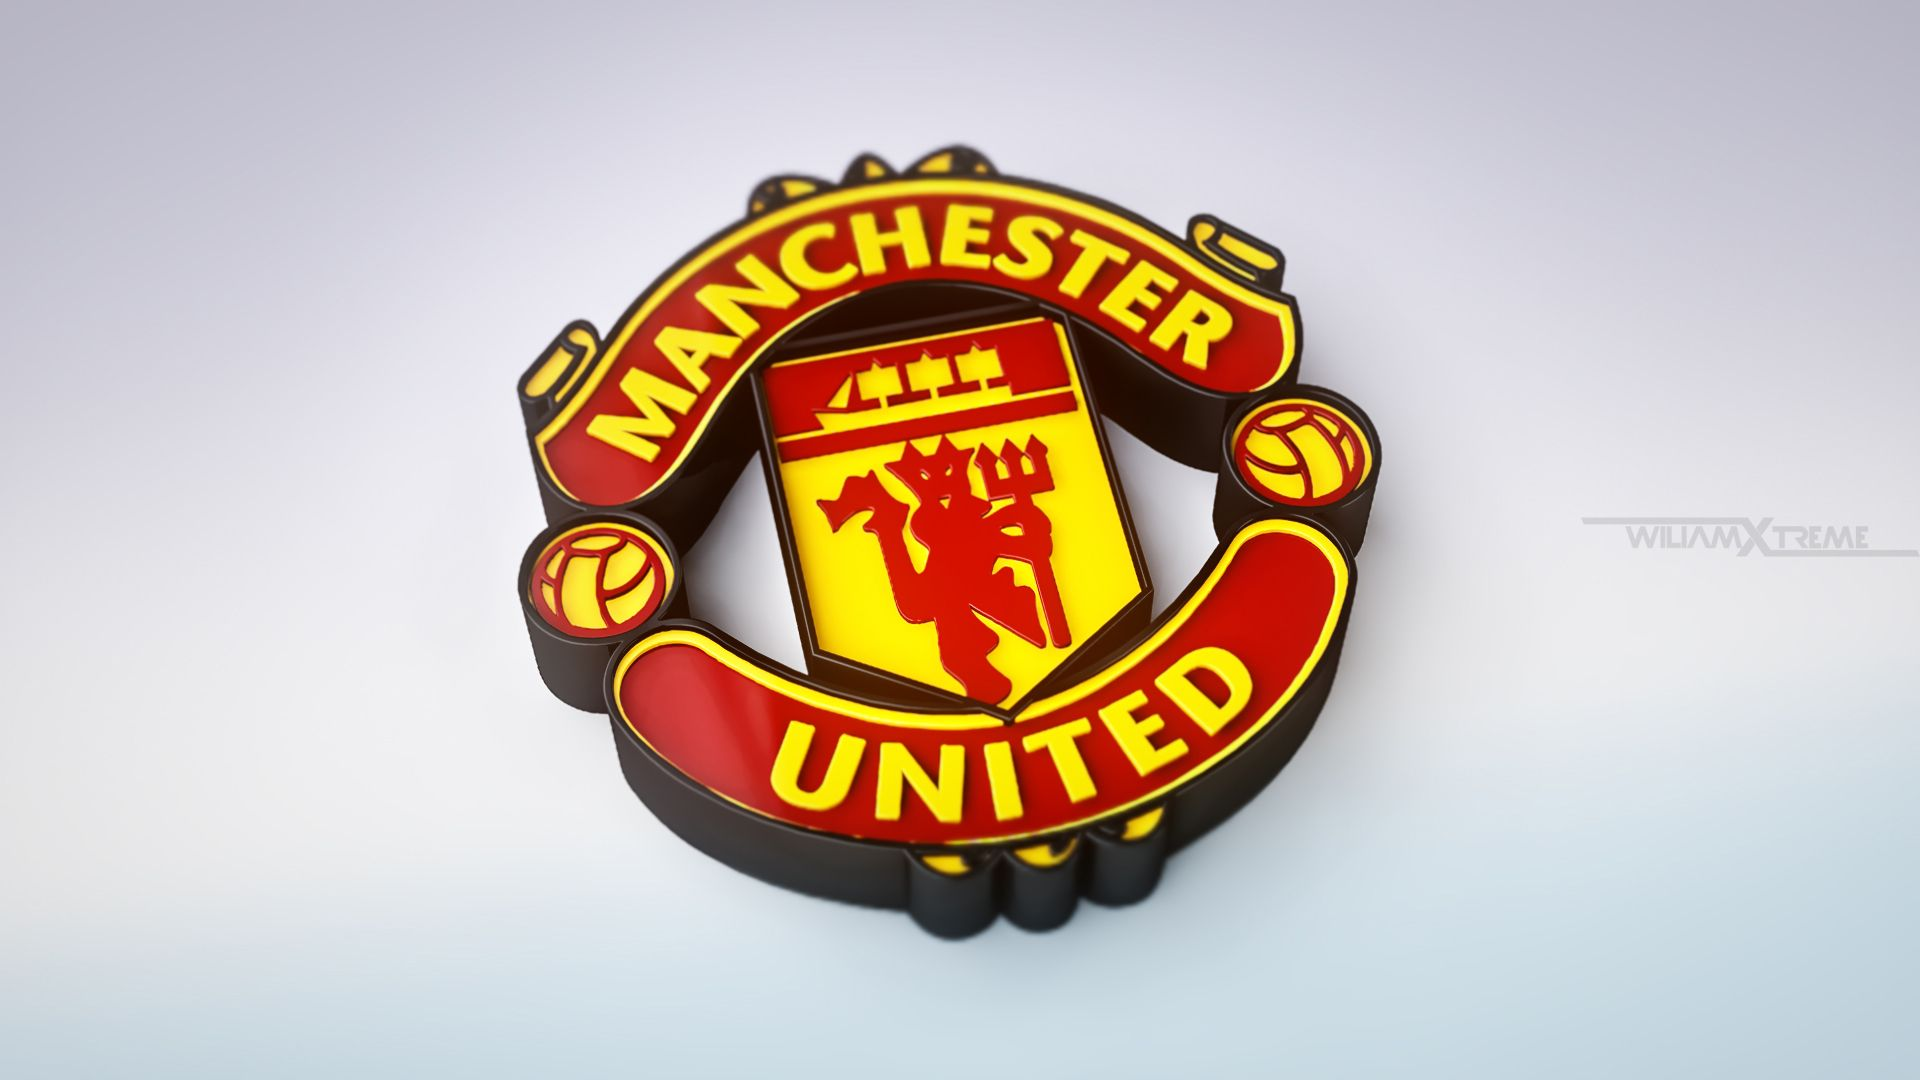 Manchester United Logo Wallpaper Posted By Sarah Thompson